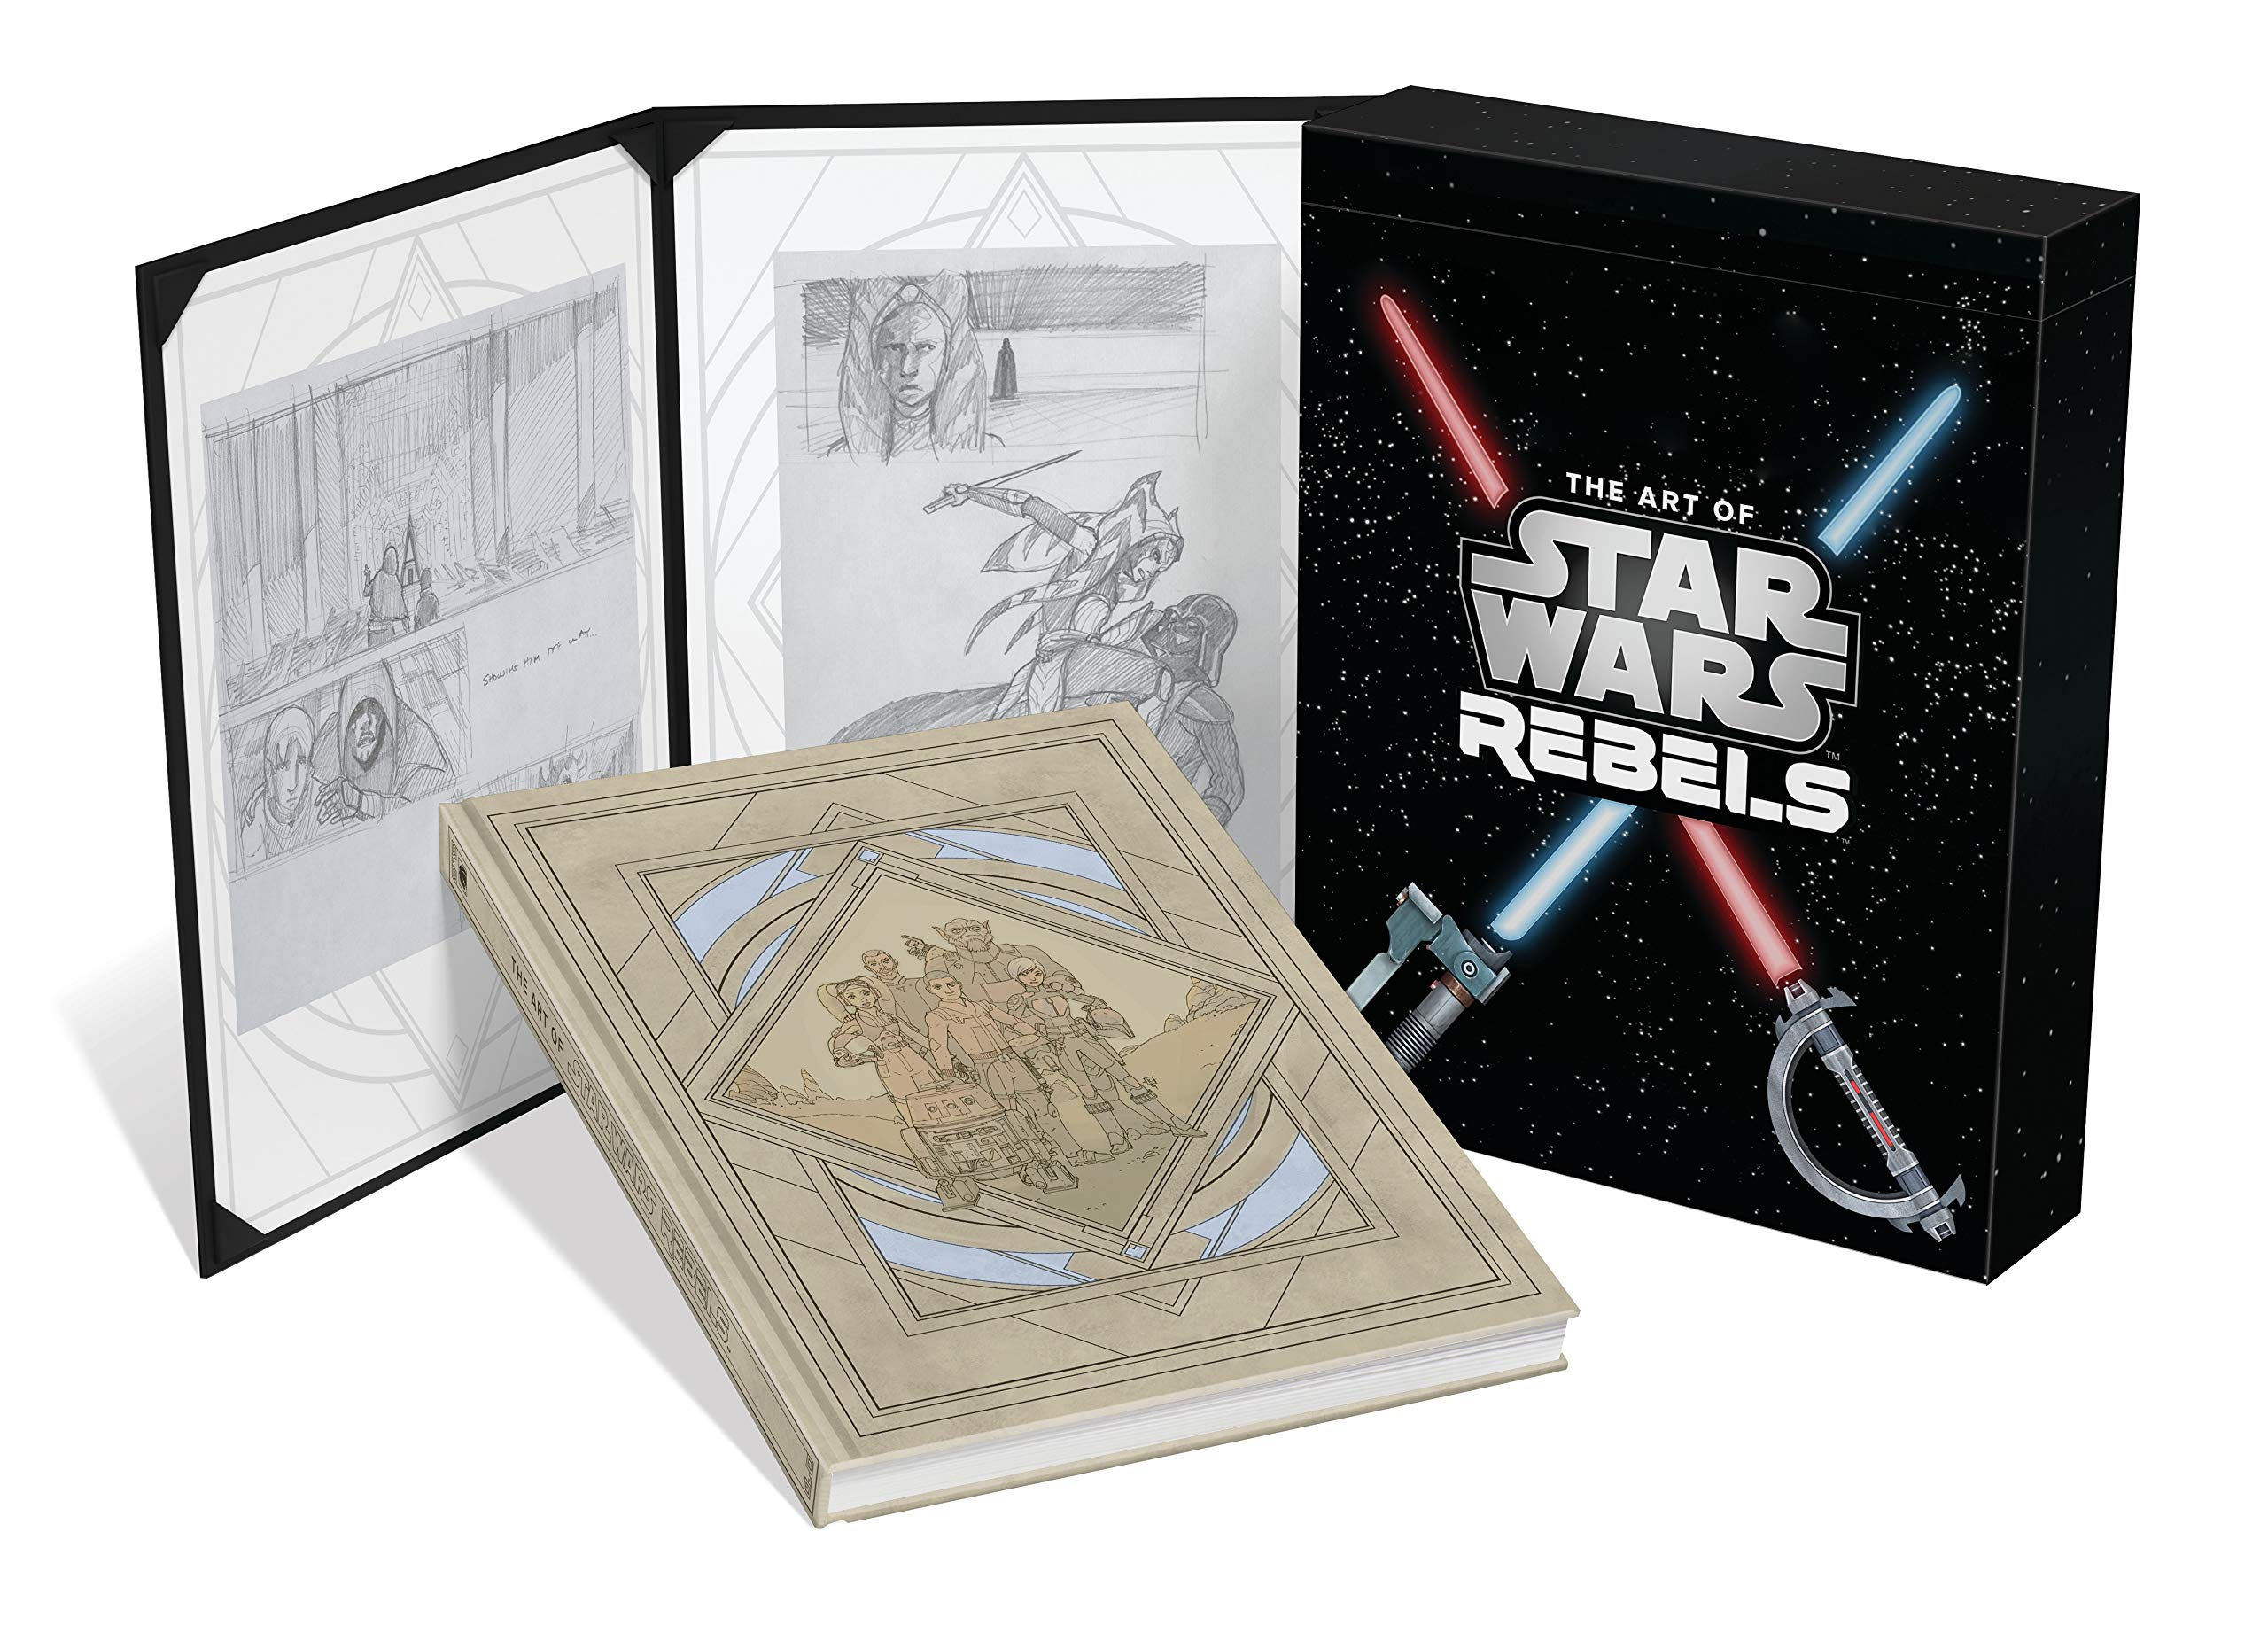 Amazon Opens Pre-Orders For The Art of Star Wars Rebels